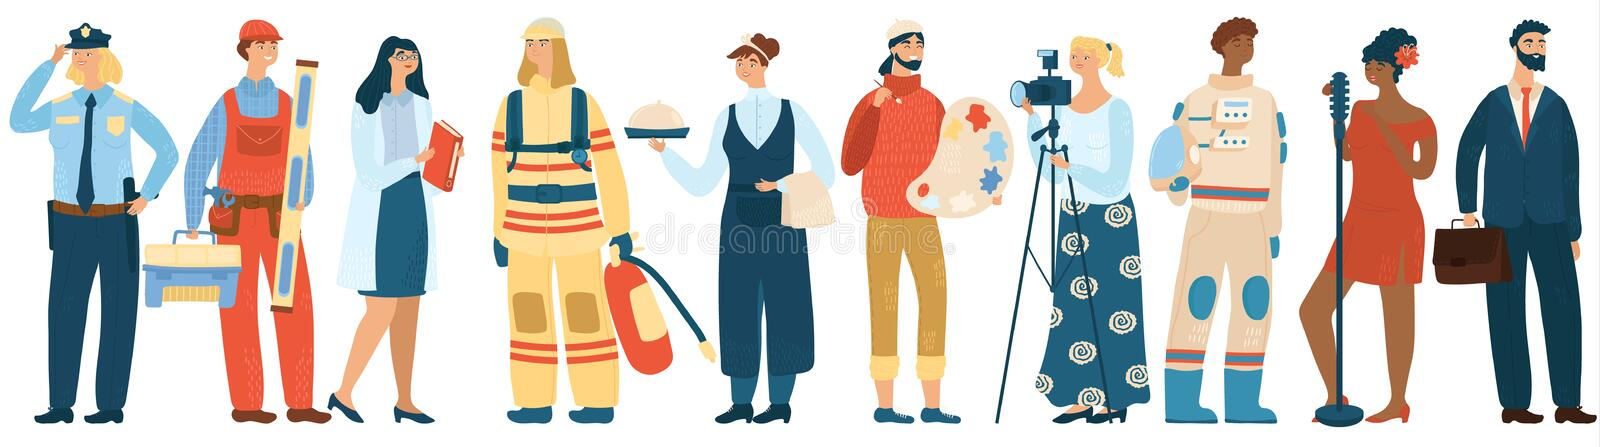 People occupation vector professional man and woman in uniform of firefighter, police officer and astronaut. Workers of royalty free stock image